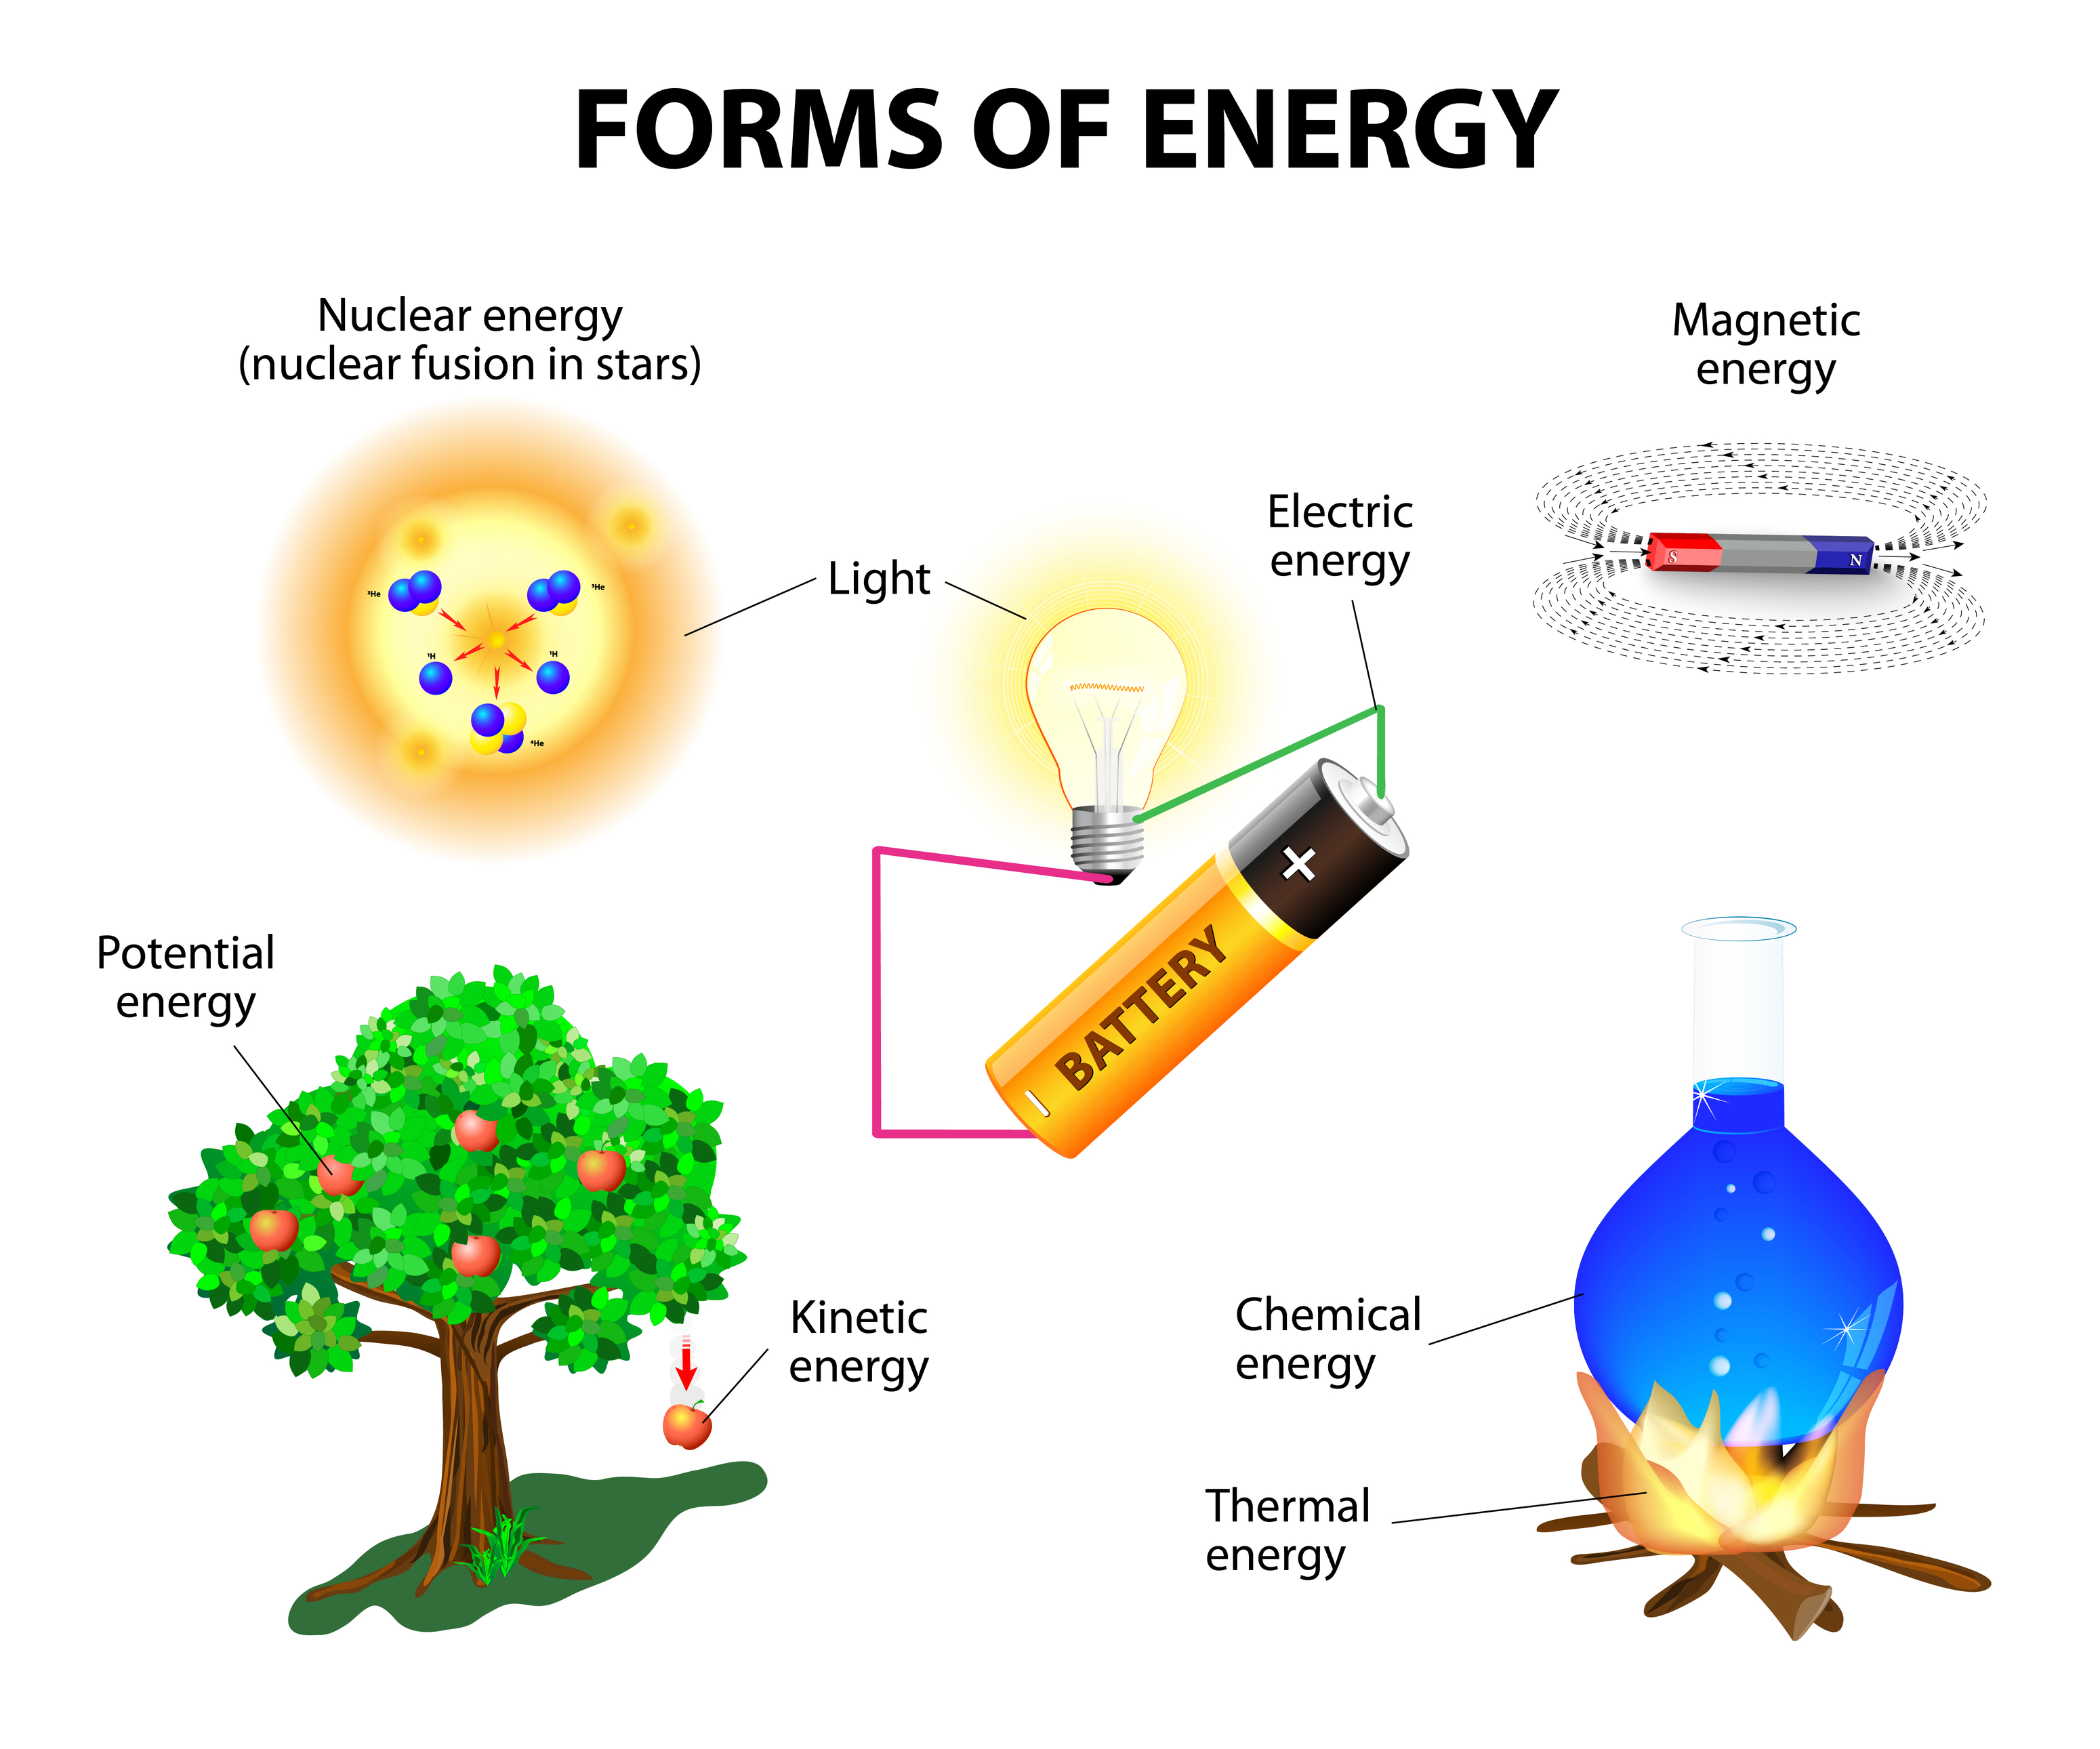 thermal energy Definition of thermal energy in the definitionsnet dictionary meaning of thermal energy what does thermal energy mean information and translations of thermal energy in the most comprehensive dictionary definitions resource on the web.